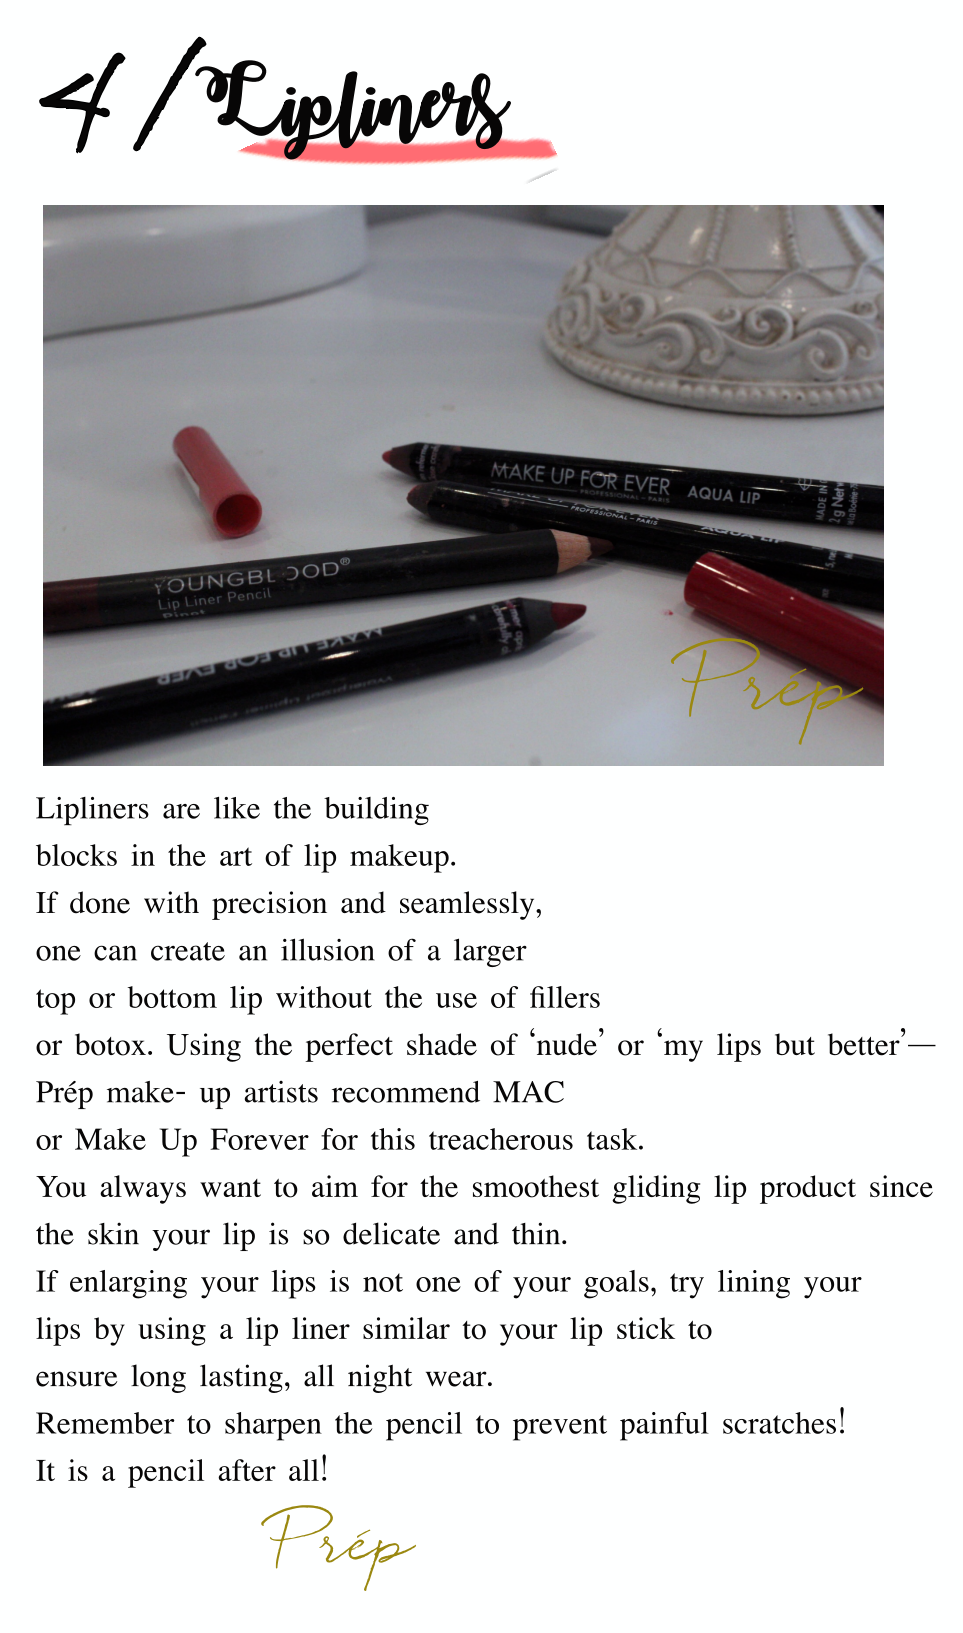 Lipliners are like the building blocks in the art of lip makeup. If done with precision and perfectly, one can create an illusion of a larger top or bottom lip without the use of fillers or botox. Using the perfect shade of 'nude' or 'my lips but better' —Prép make- up artists recommend Mac or Make Up Forever for this treacherous task. You always want to aim for the smoothest gliding lip product since the skin your lip is so delicate and thin. If enlarging your lips is not one of your goals, try lining your lips by using a lip liner similar to your lip stick to ensure long lasting, all night wear. Remember to sharpen tha pencil to prevent painful scratches!